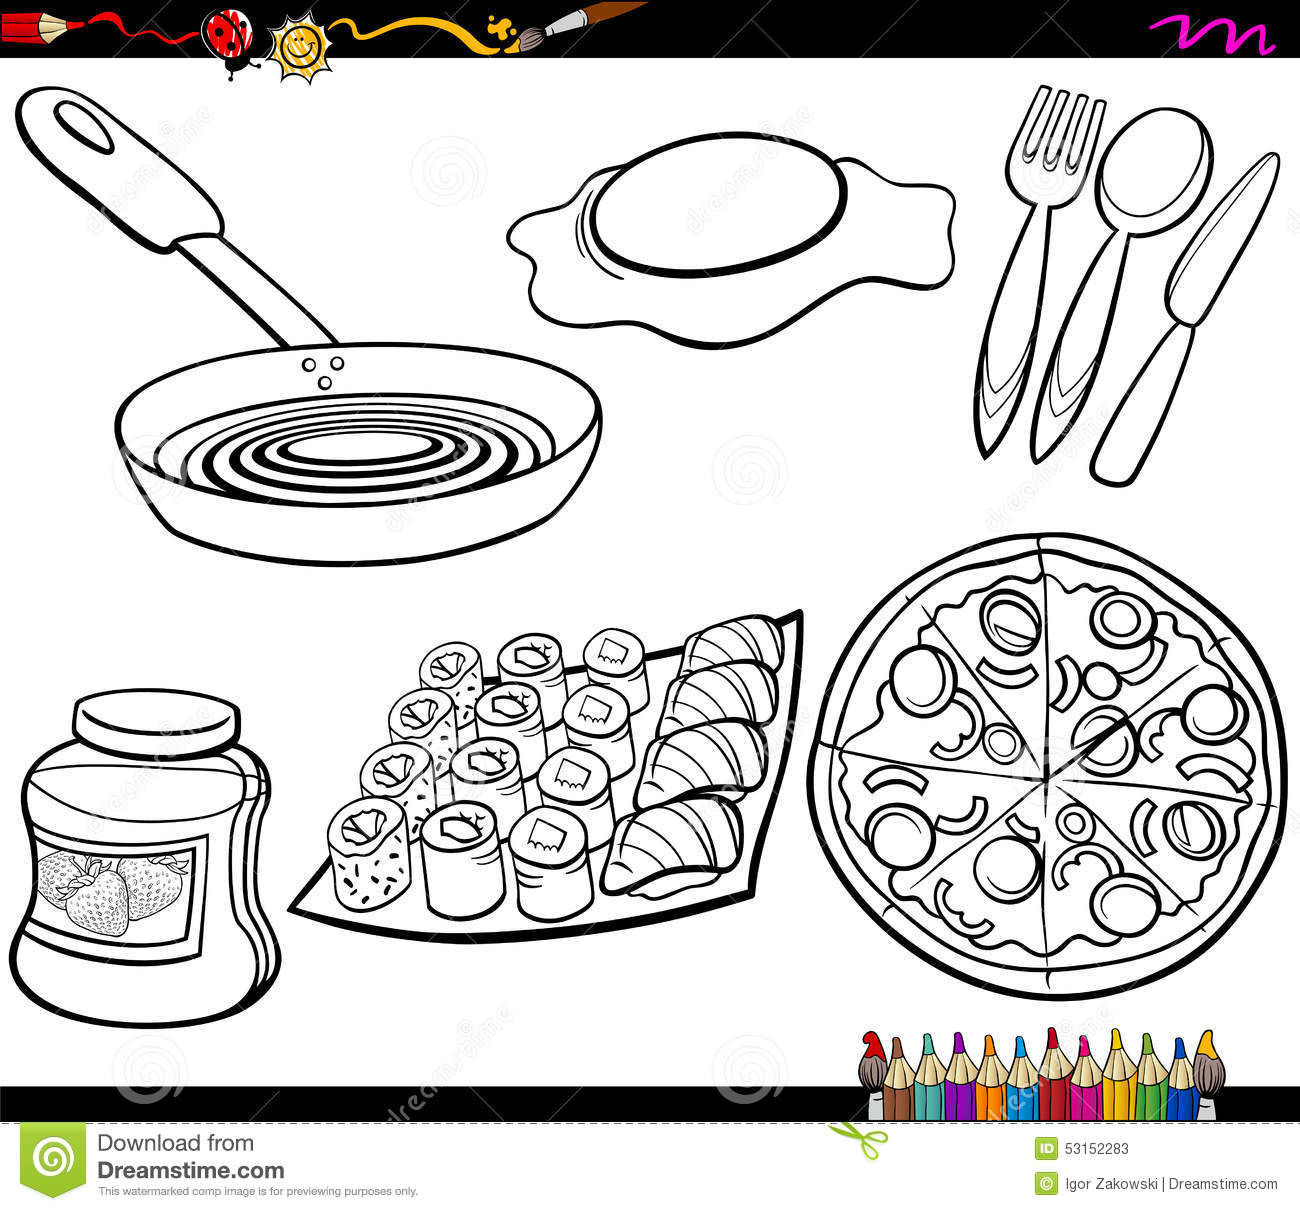 Free coloring pages kitchen utensils - Coloring Book Cartoon Illustration Of Kitchen